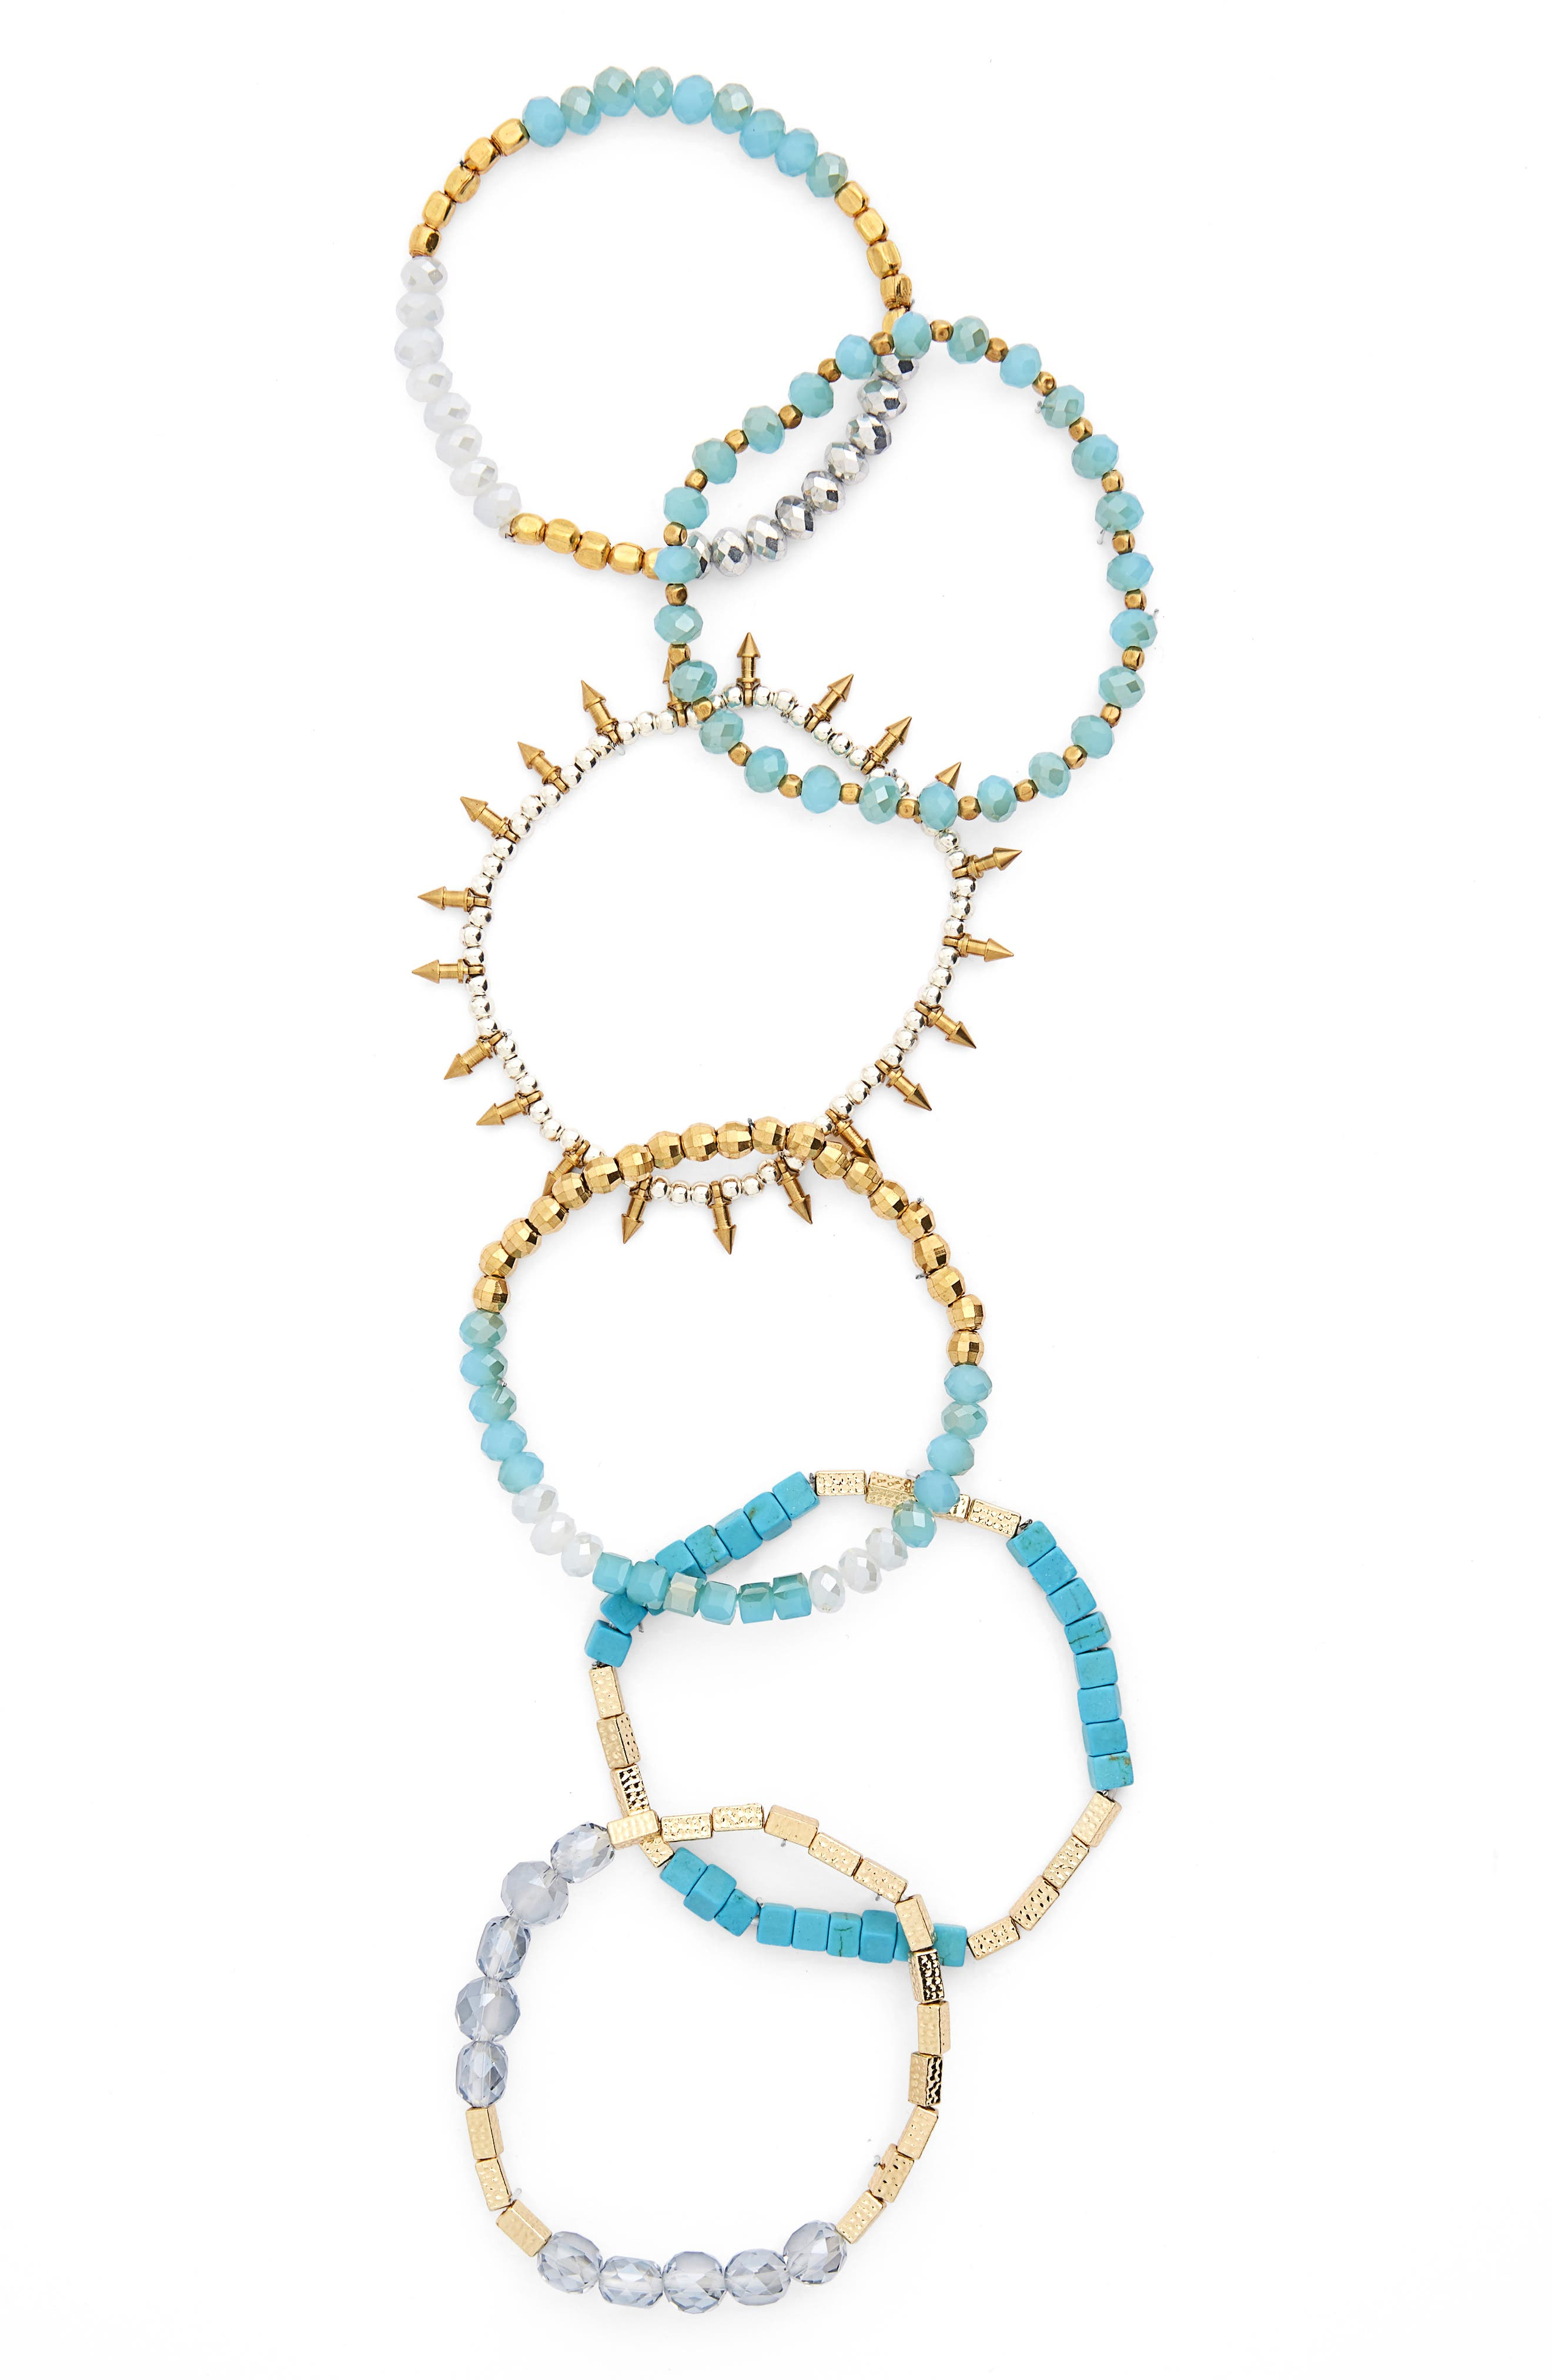 Set of 6 Assorted Stretch Bracelets,                             Main thumbnail 1, color,                             Turquoise/ Multi